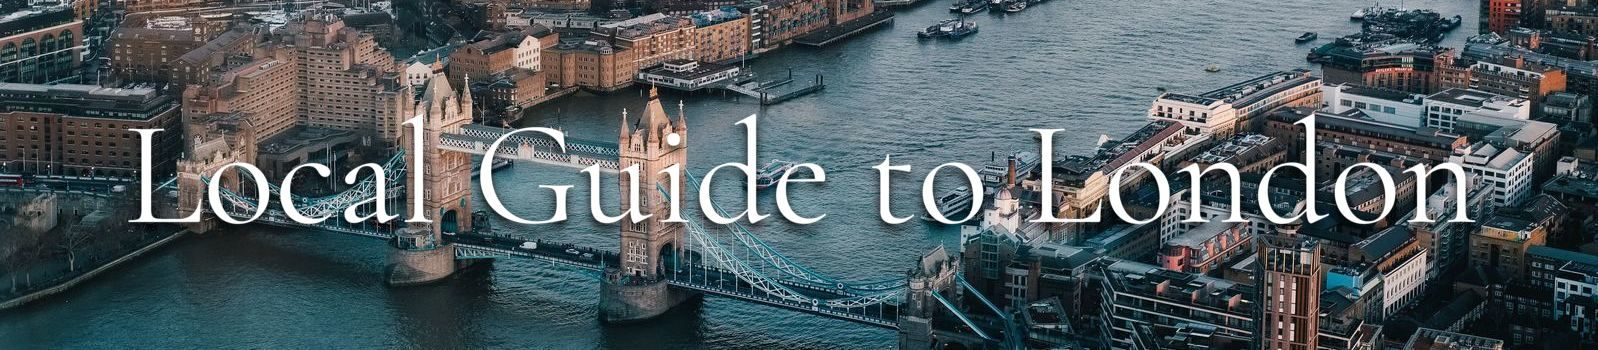 Locals guide to london banner